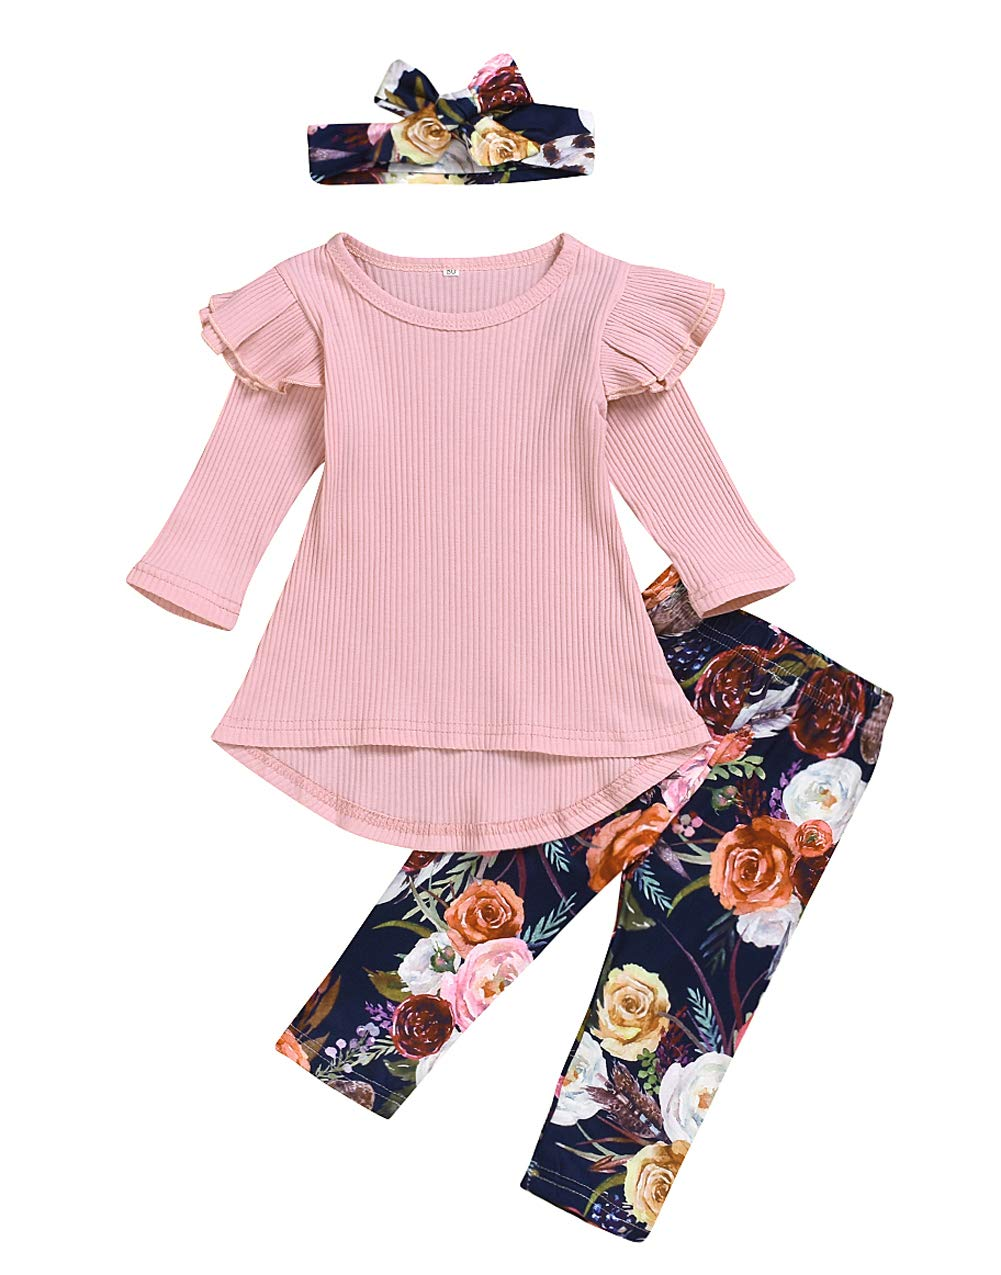 Toddler Baby Girls Clothes Sets Autumn Irregular Tops Floral Pants with Headband Outfits